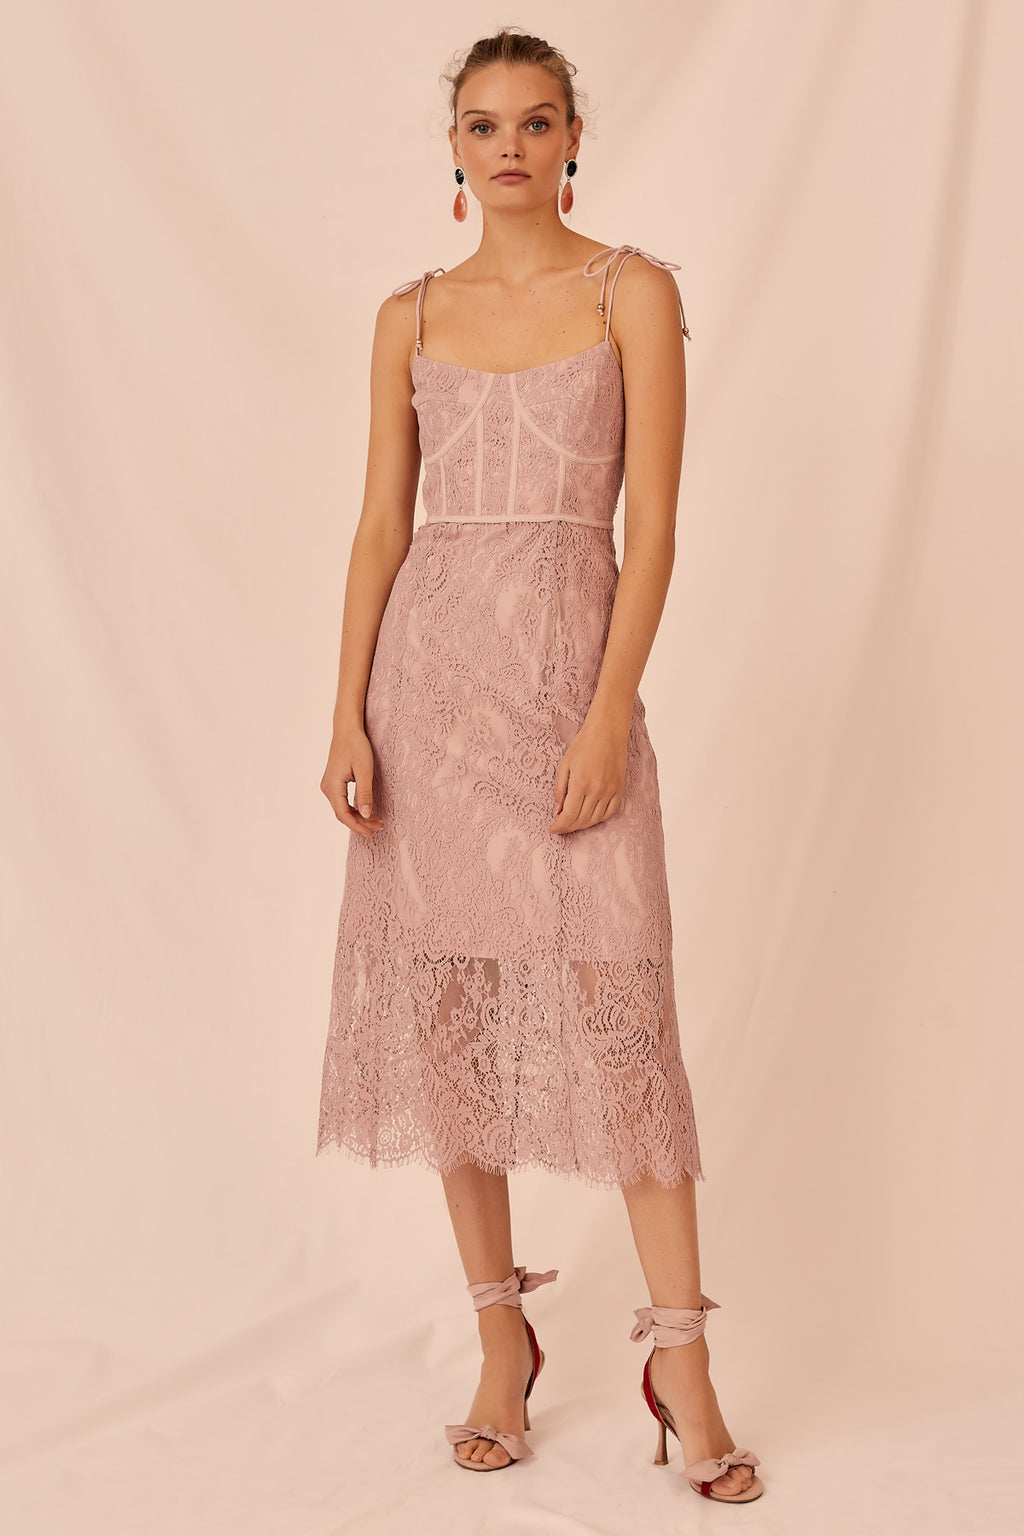 Sense Dress in Rose by Keepsake the Label